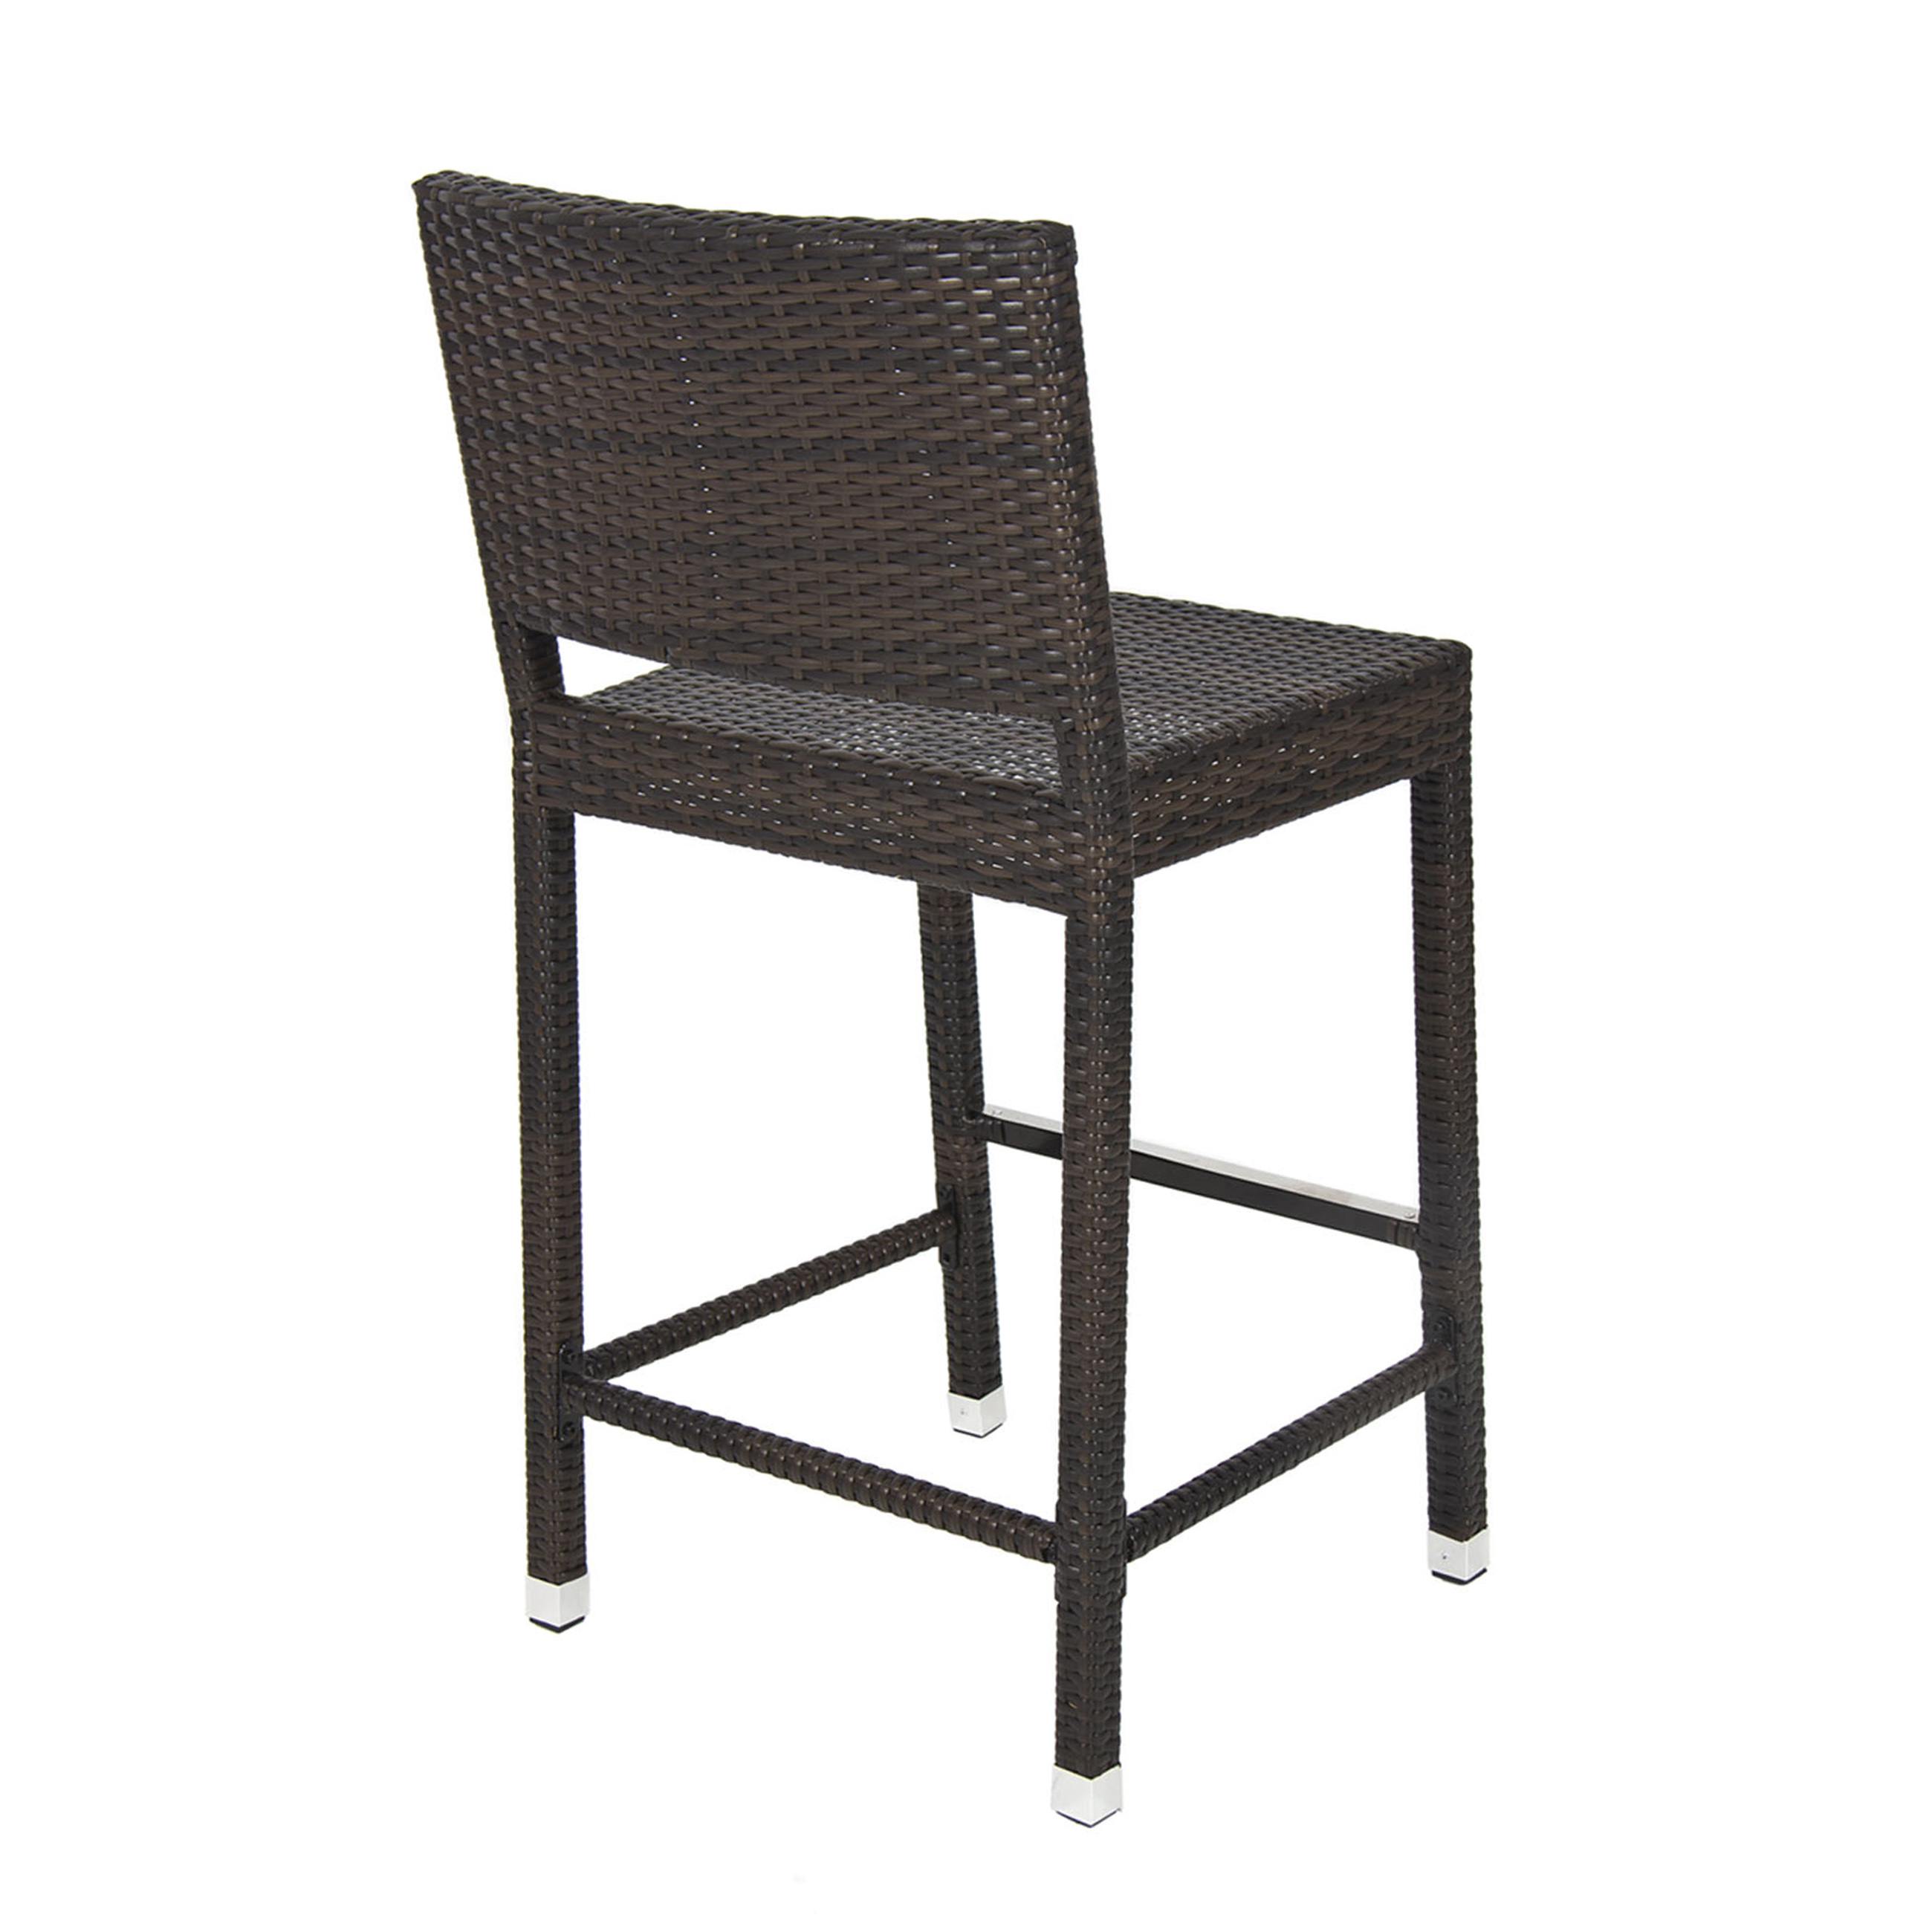 Best Choice Products Outdoor Wicker Barstool All Weather Brown Patio Furniture New Bar Stool